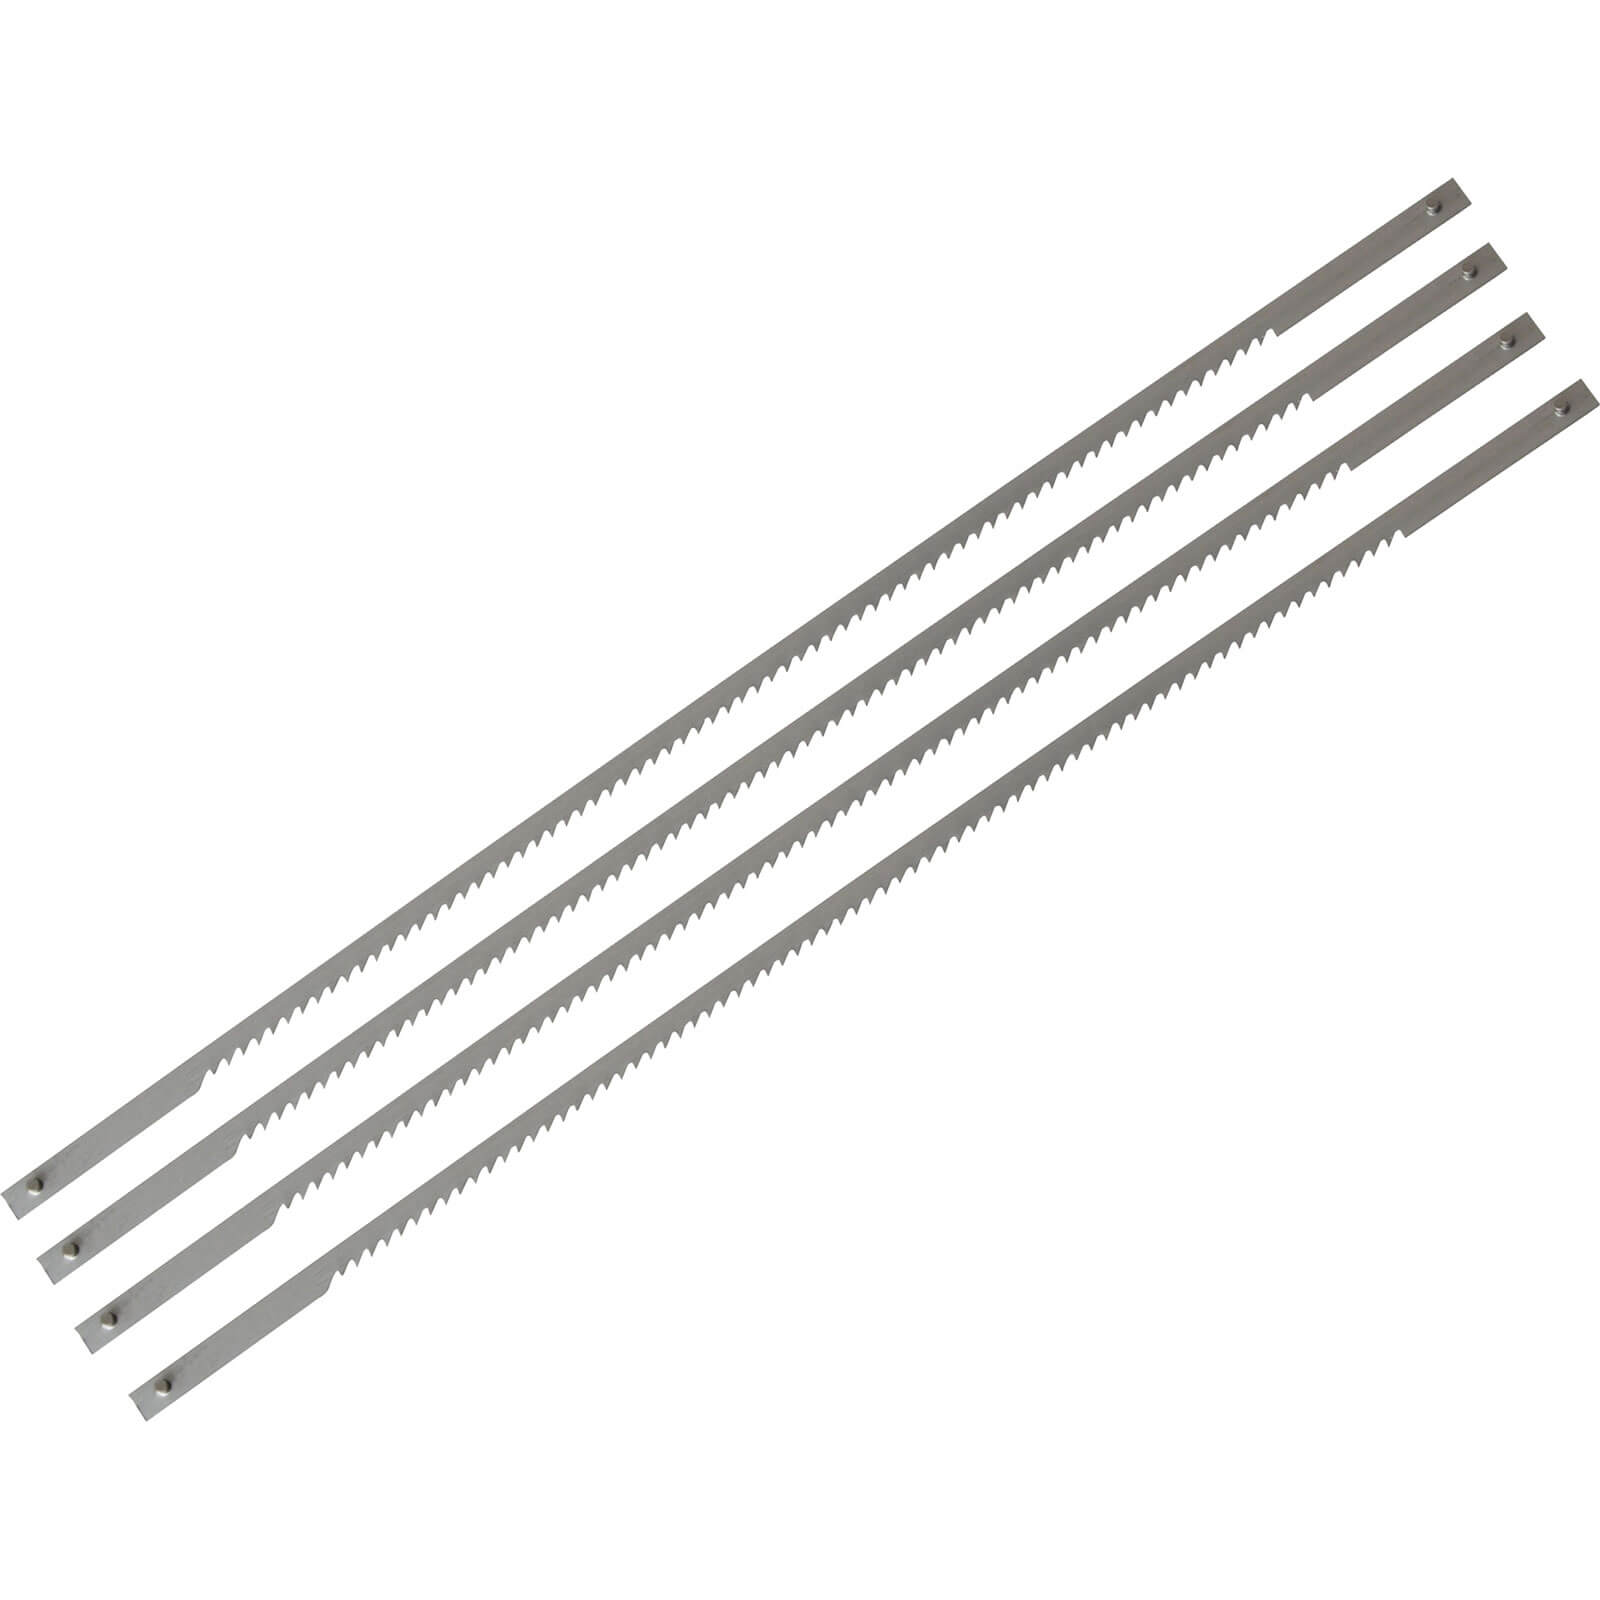 Image of Stanley Coping Saw Blades Pack of 4